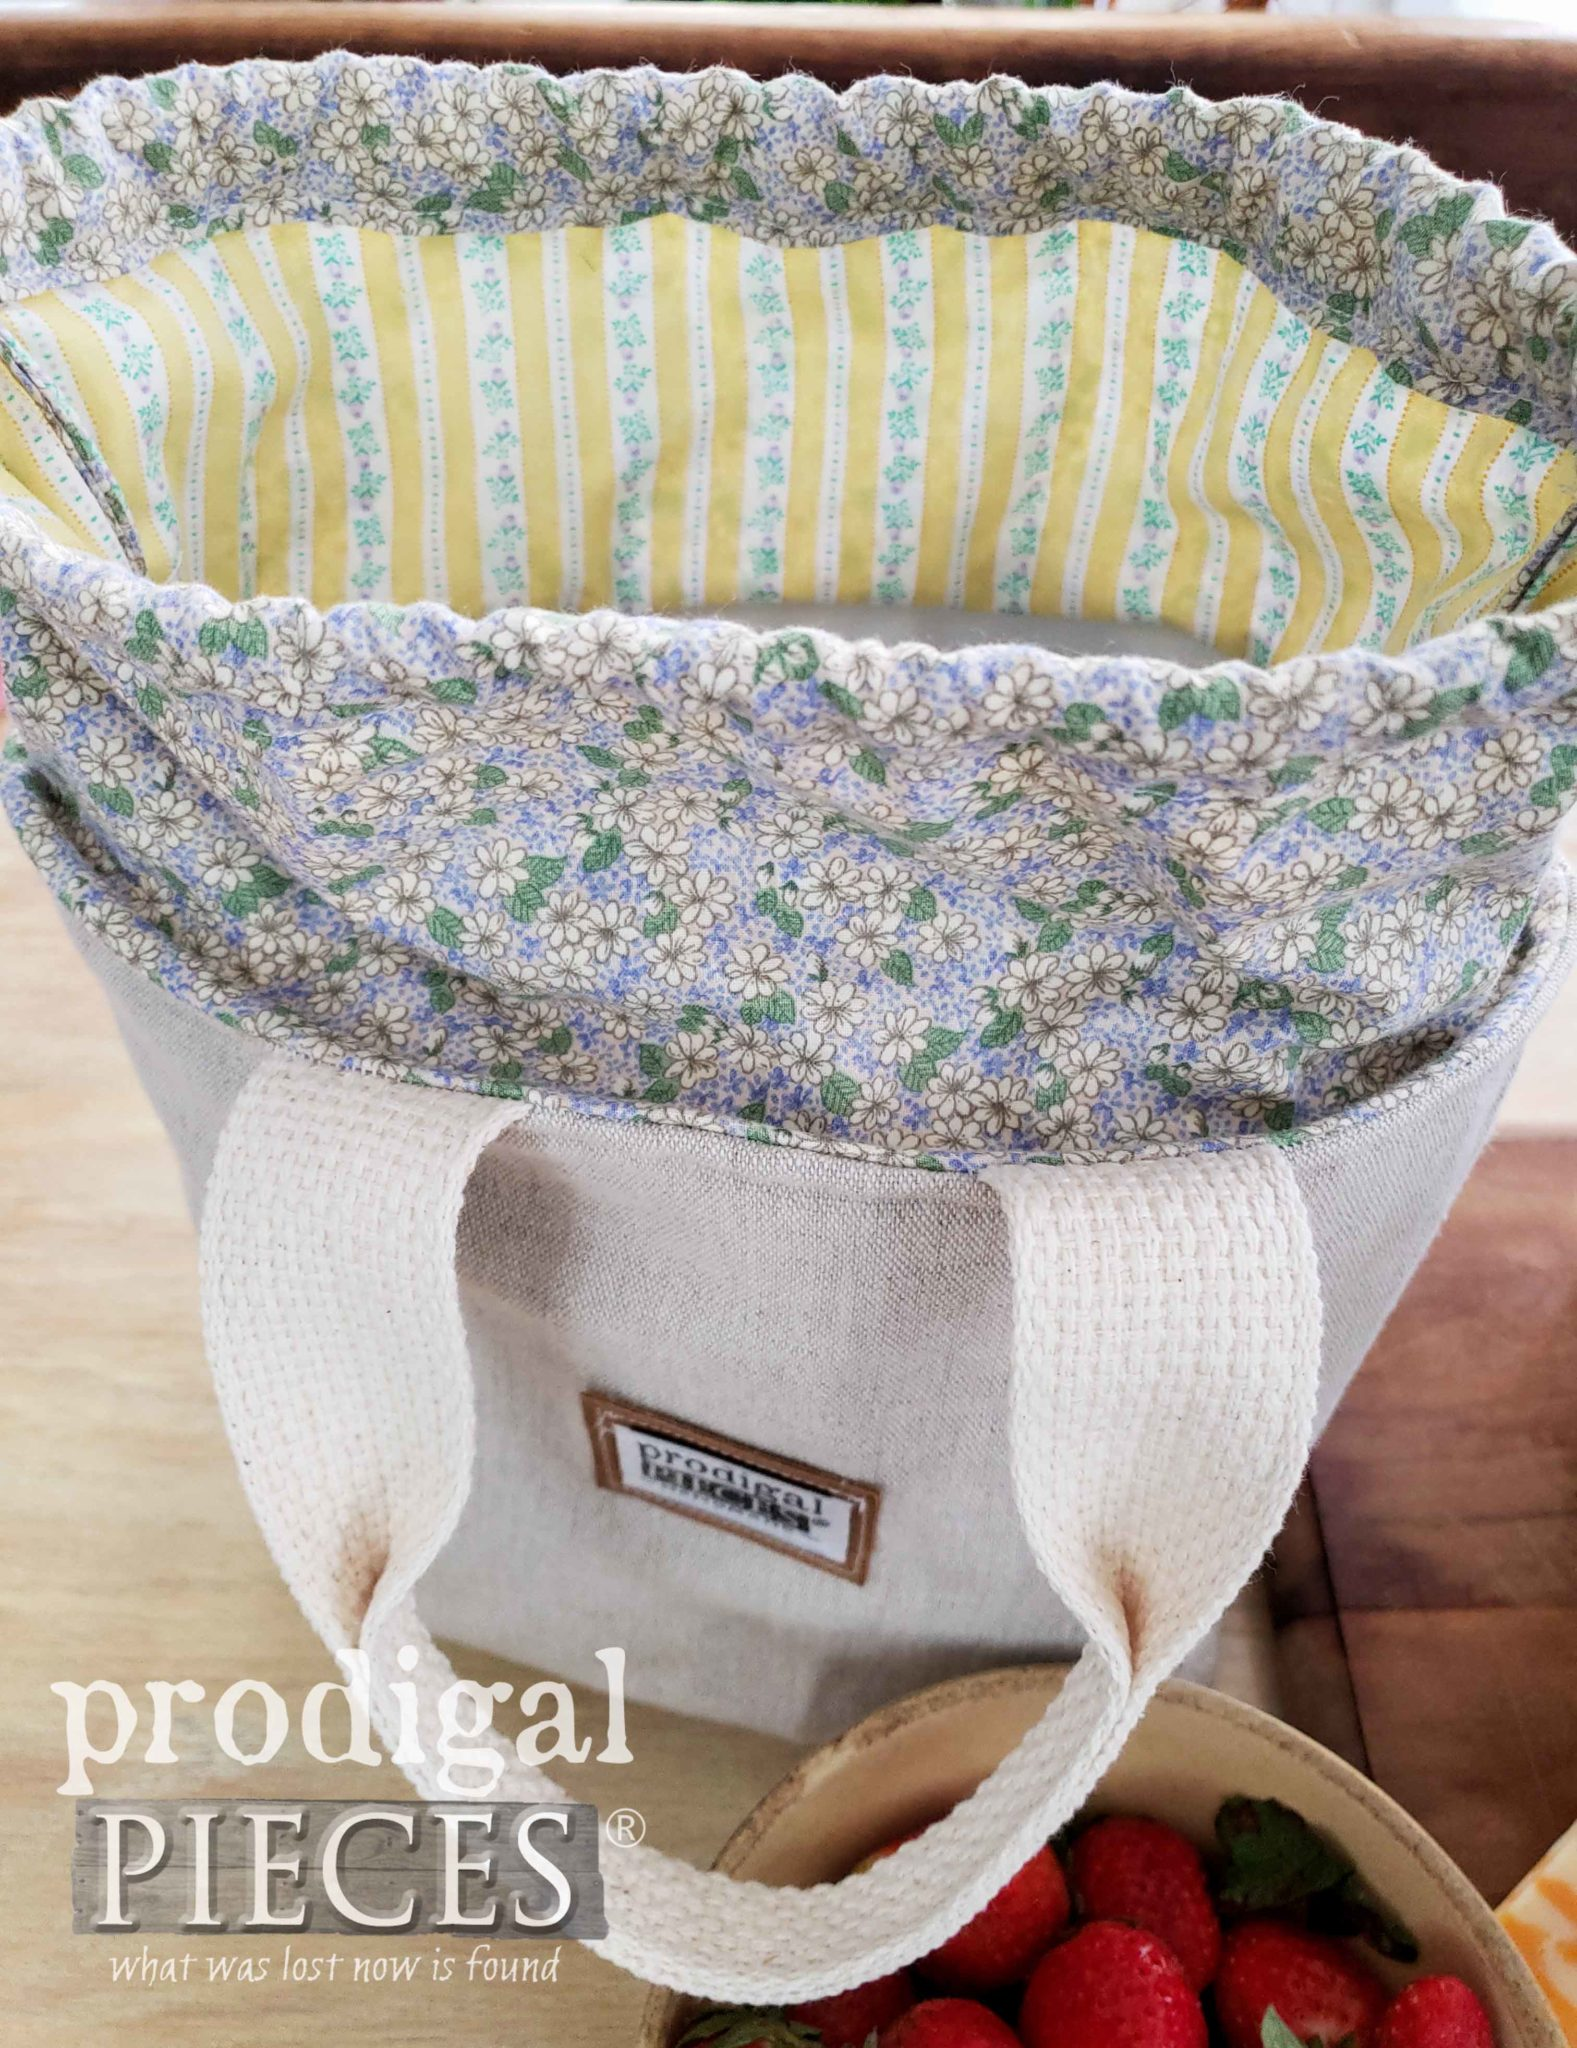 Linen Lavender Lunch Bag Interior by Prodigal Pieces | prodigalpieces.com #prodigalpieces #sewing #handmade